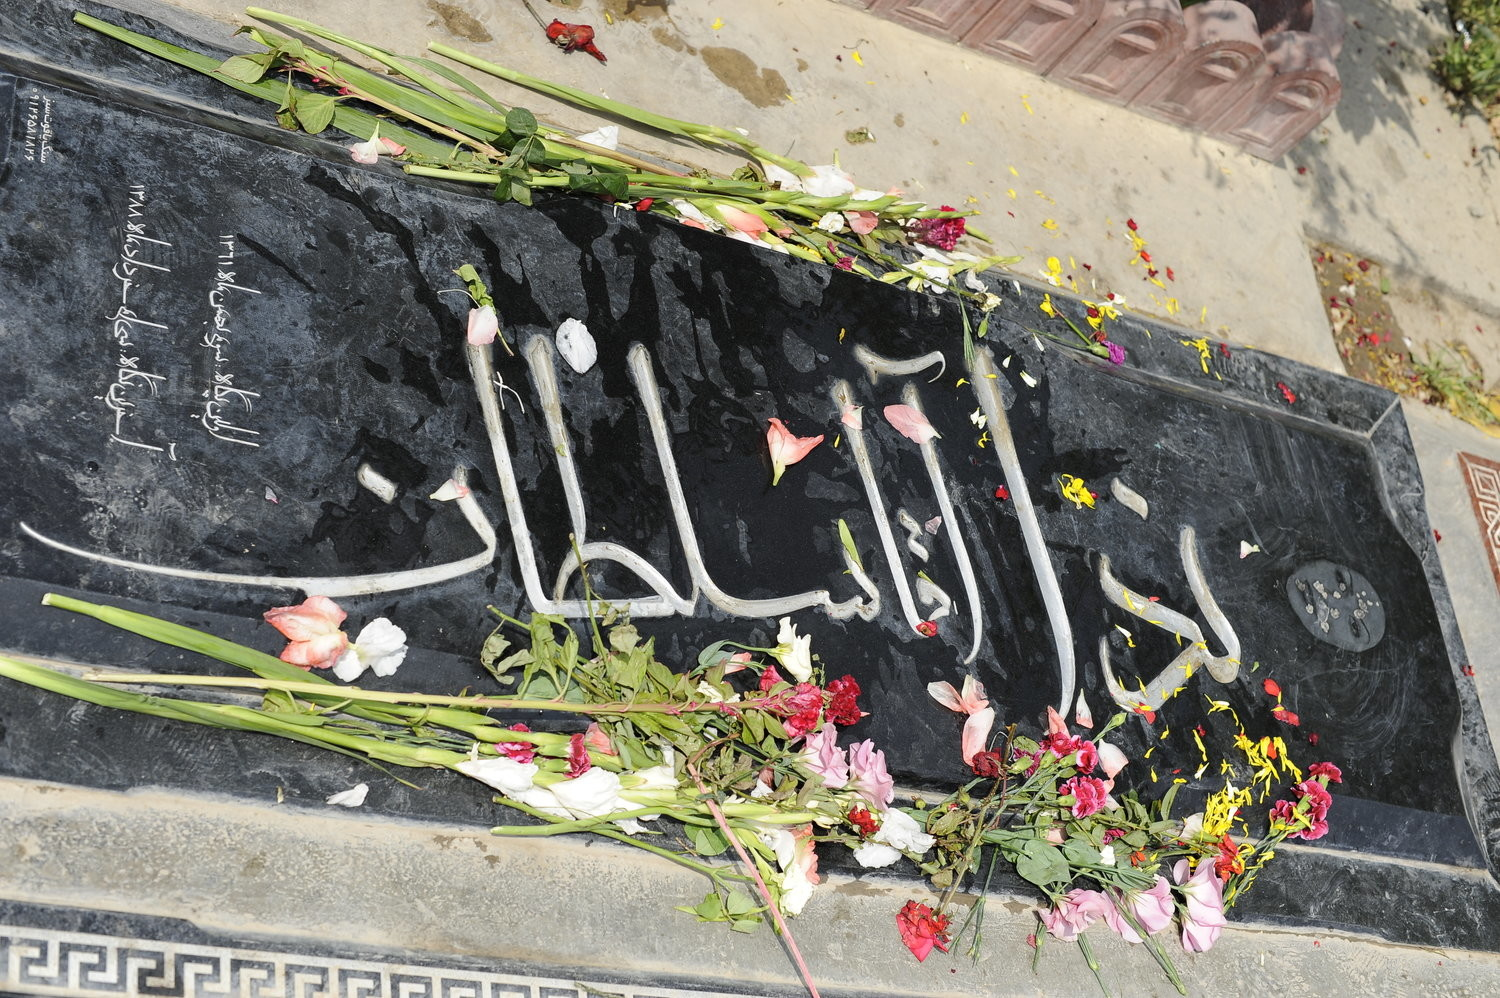 The gravesite of Neda Agha-Soltan, who was fatally shot by the Basij pro-government paramilitary group while demonstrating during 2009 anti-regime protests in Iran.